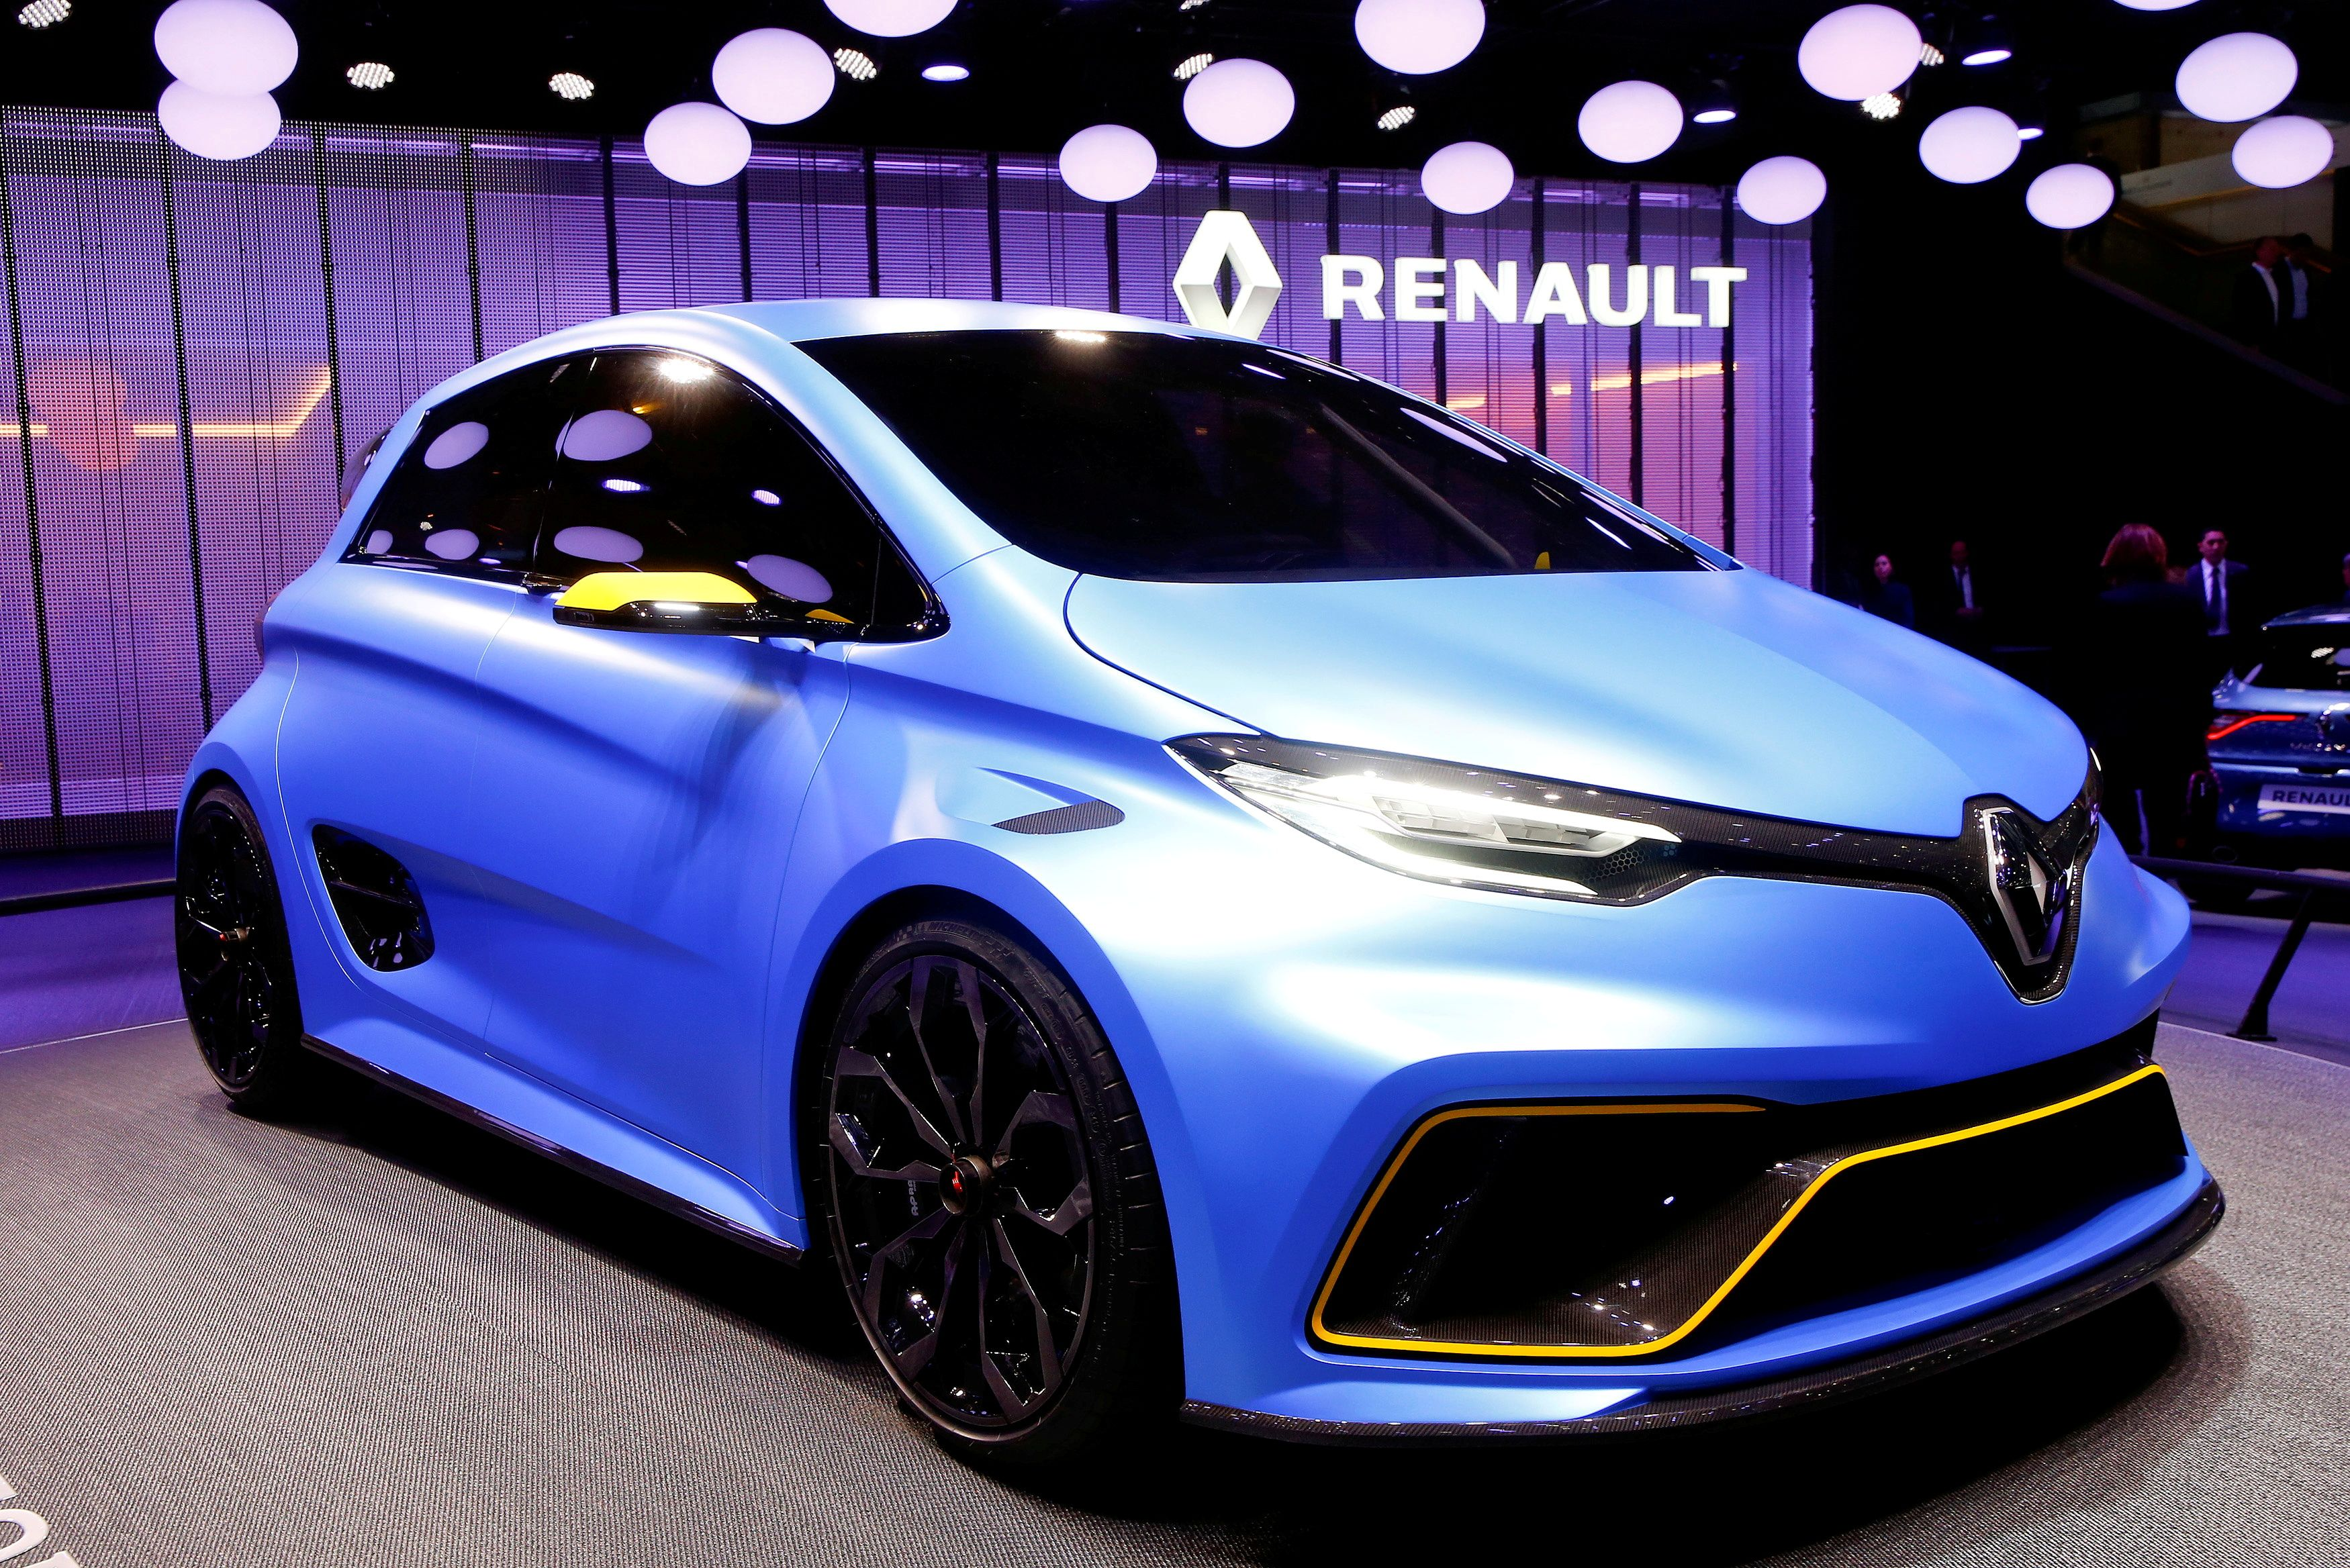 A Renault Zoe E-Sport concept car is seen during the 87th International Motor Show at Palexpo in Geneva, Switzerland March 8, 2017. REUTERS/Arnd Wiegmann/File Photo